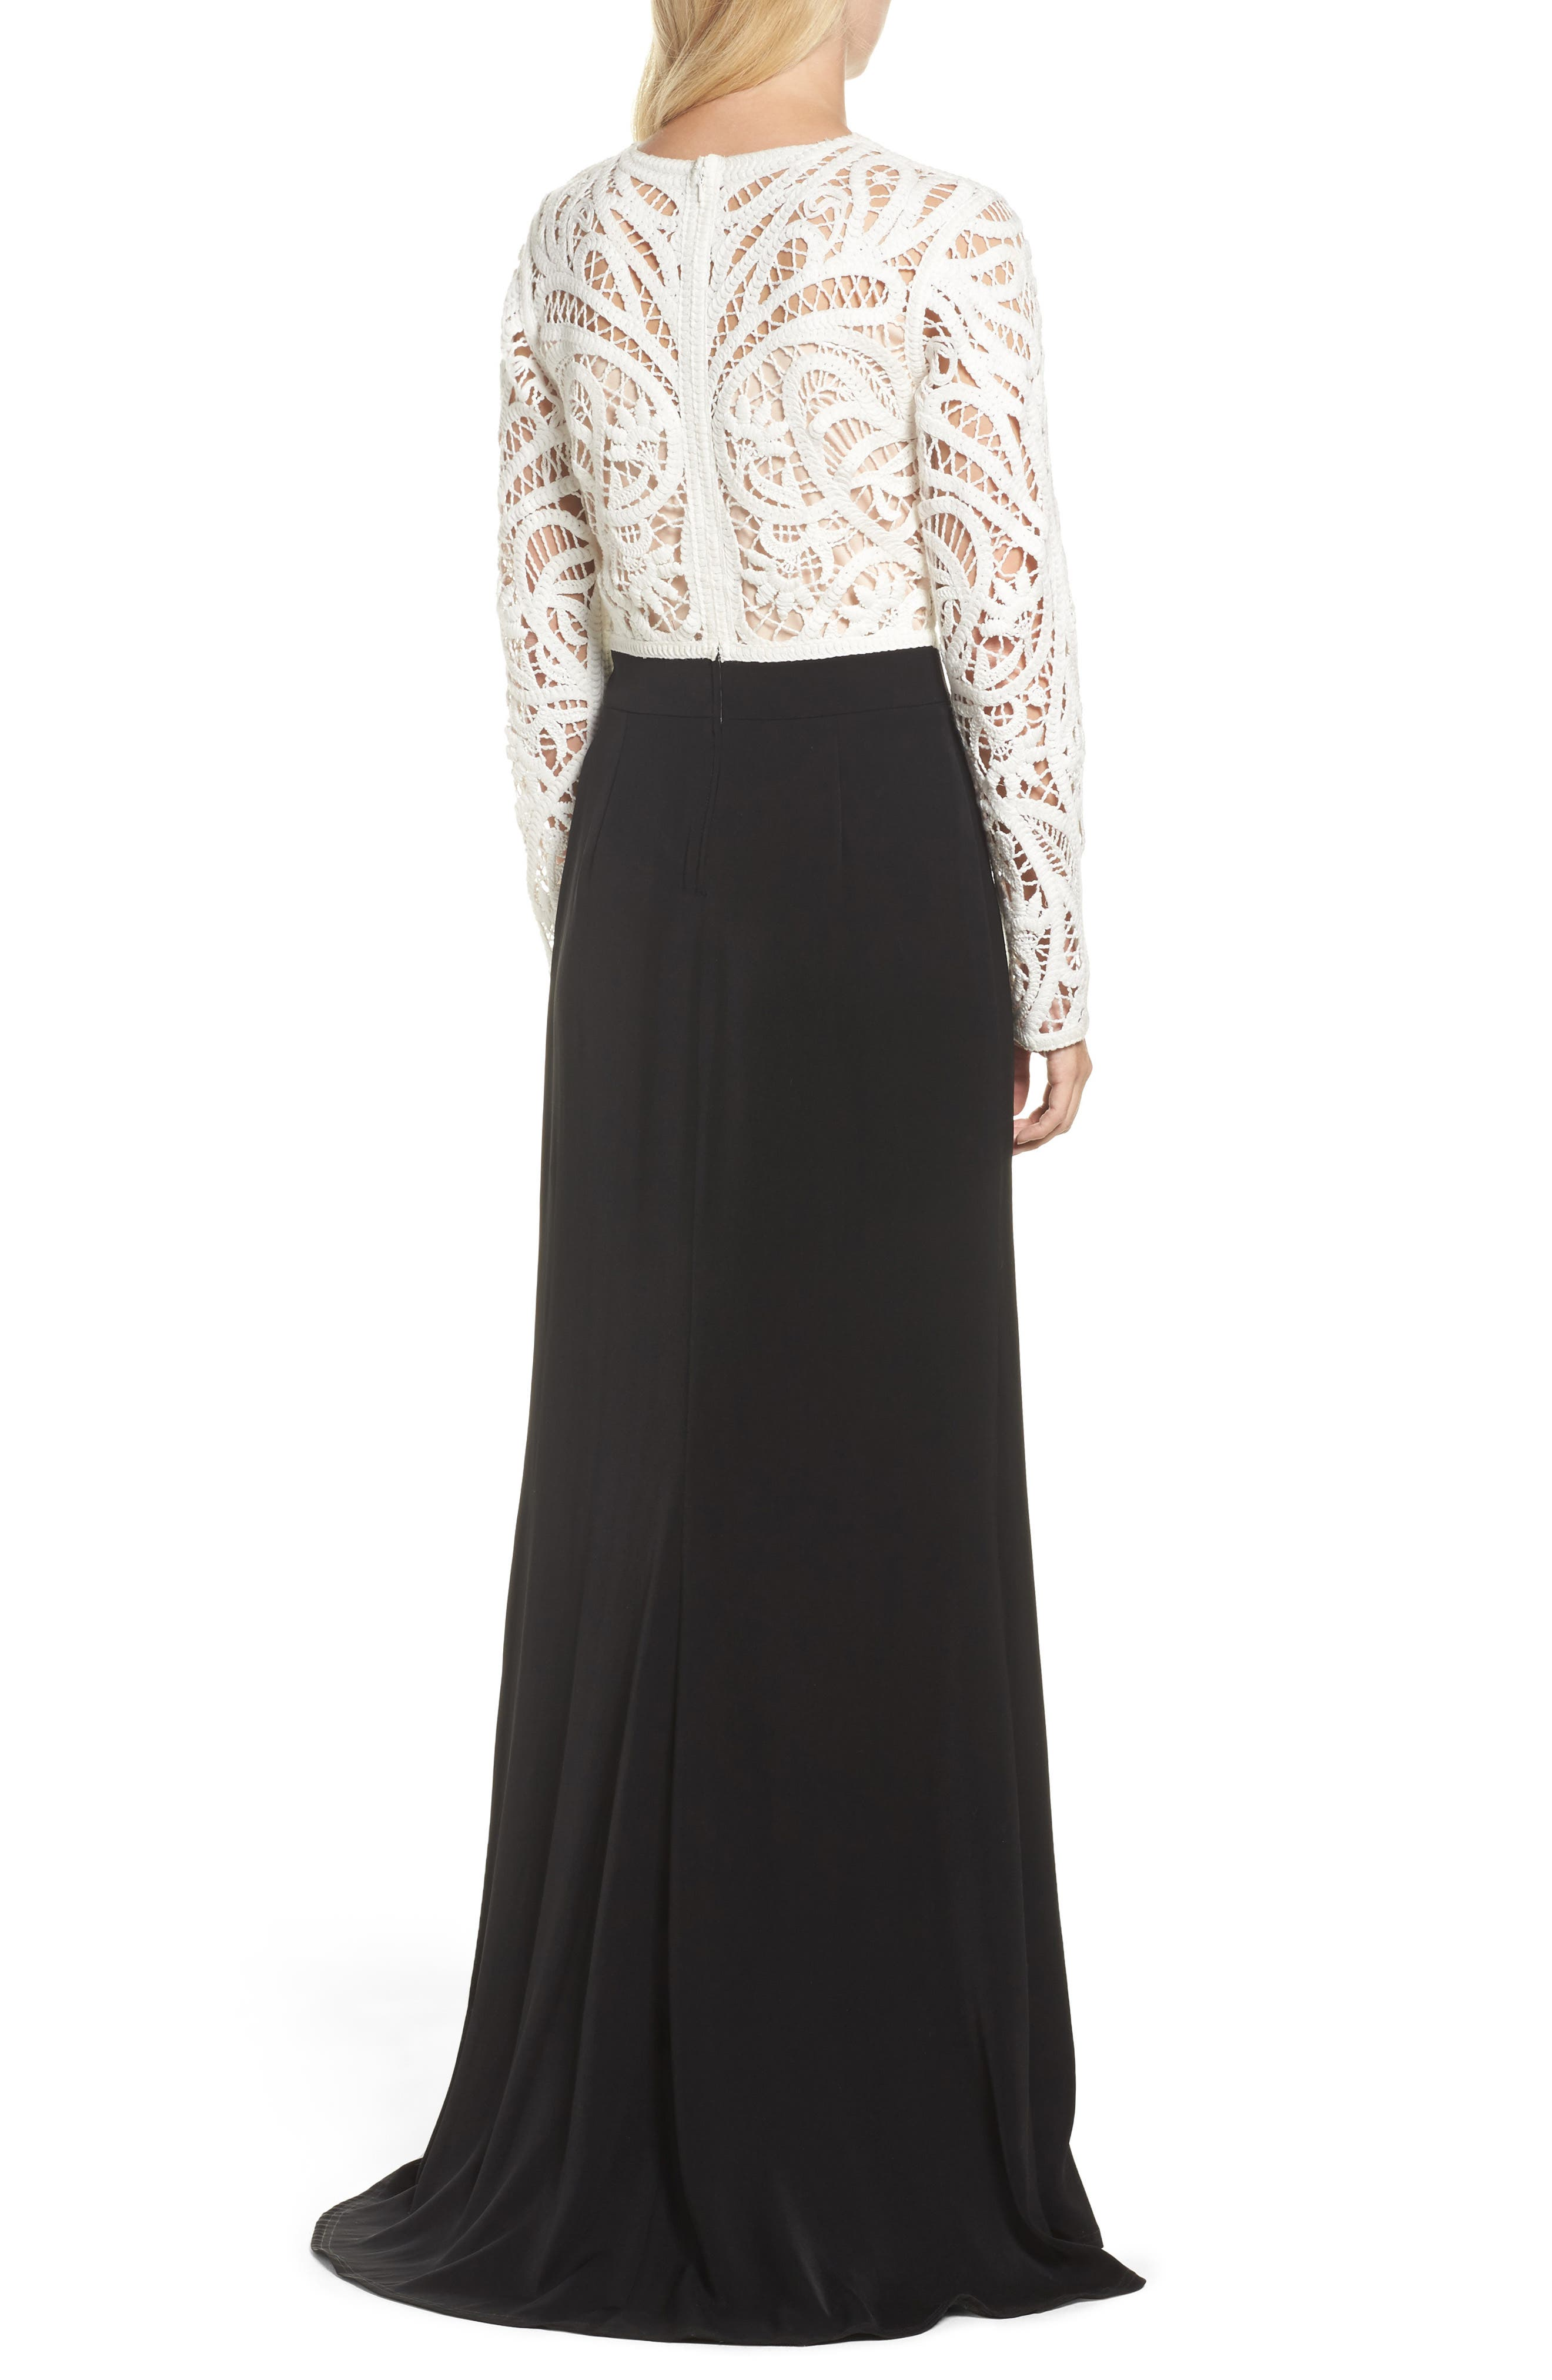 Crochet Lace & Crepe Gown,                             Alternate thumbnail 2, color,                             IVORY/ BLACK